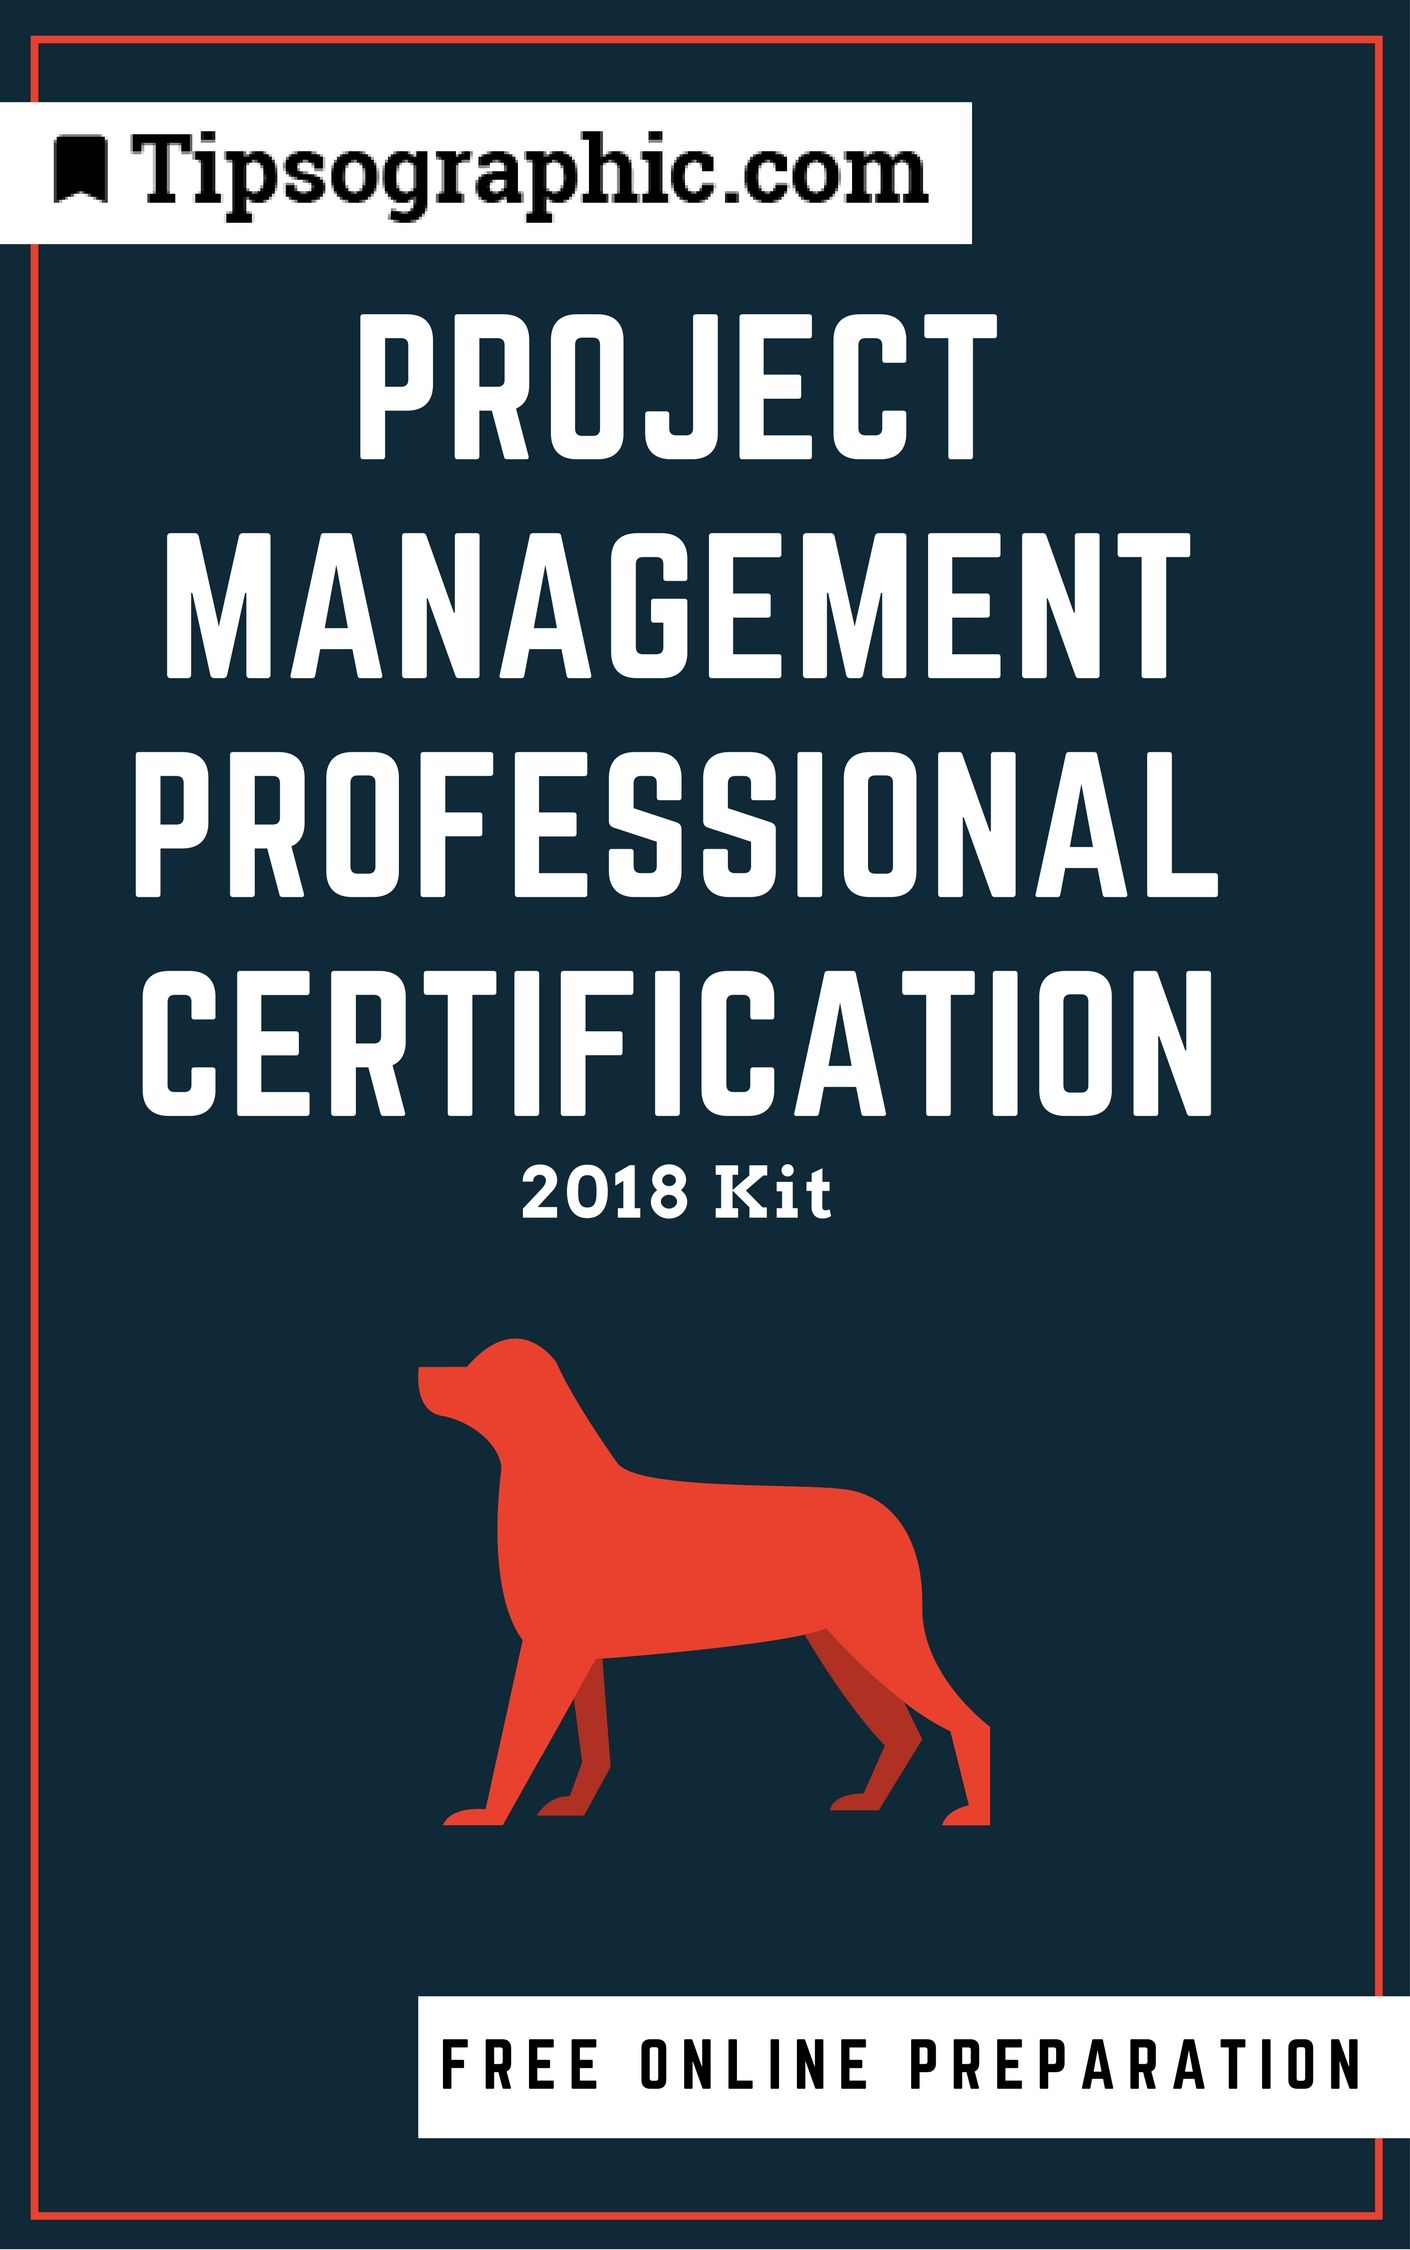 Project Management Professional Certification 2018 Kit Free Online